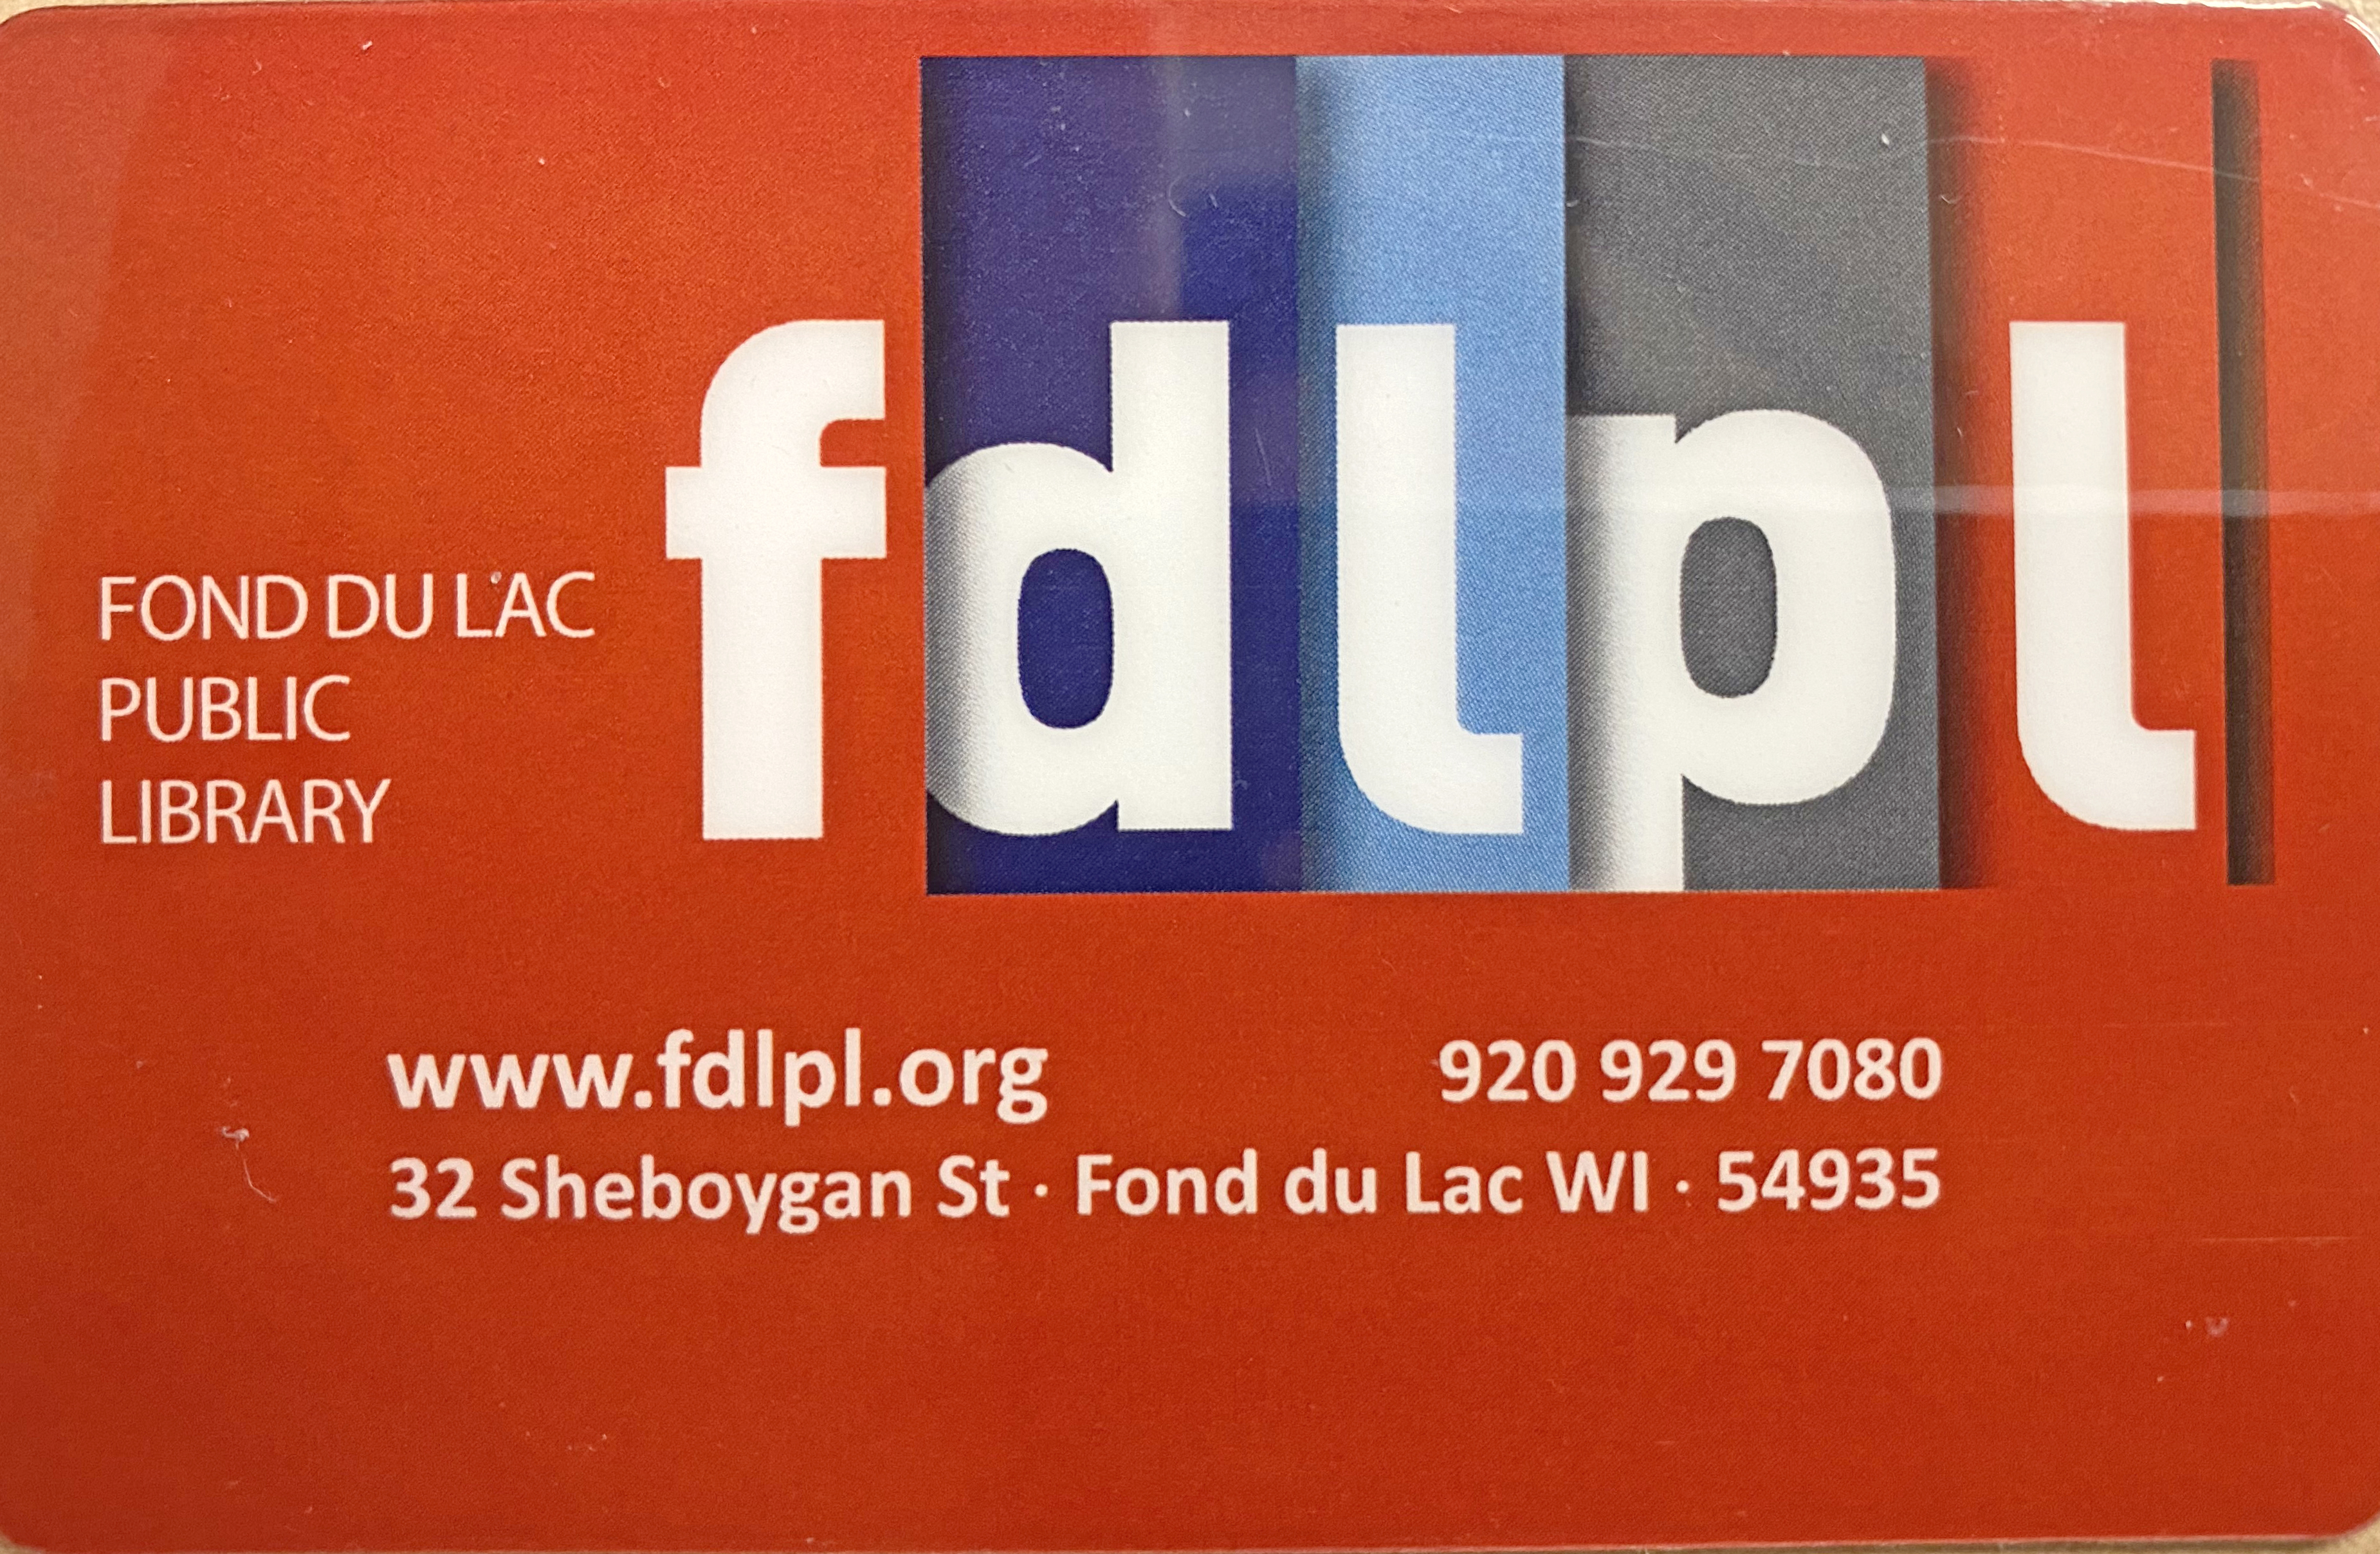 Sign up for a card at FDLPL during Library Card Sign-Up Month